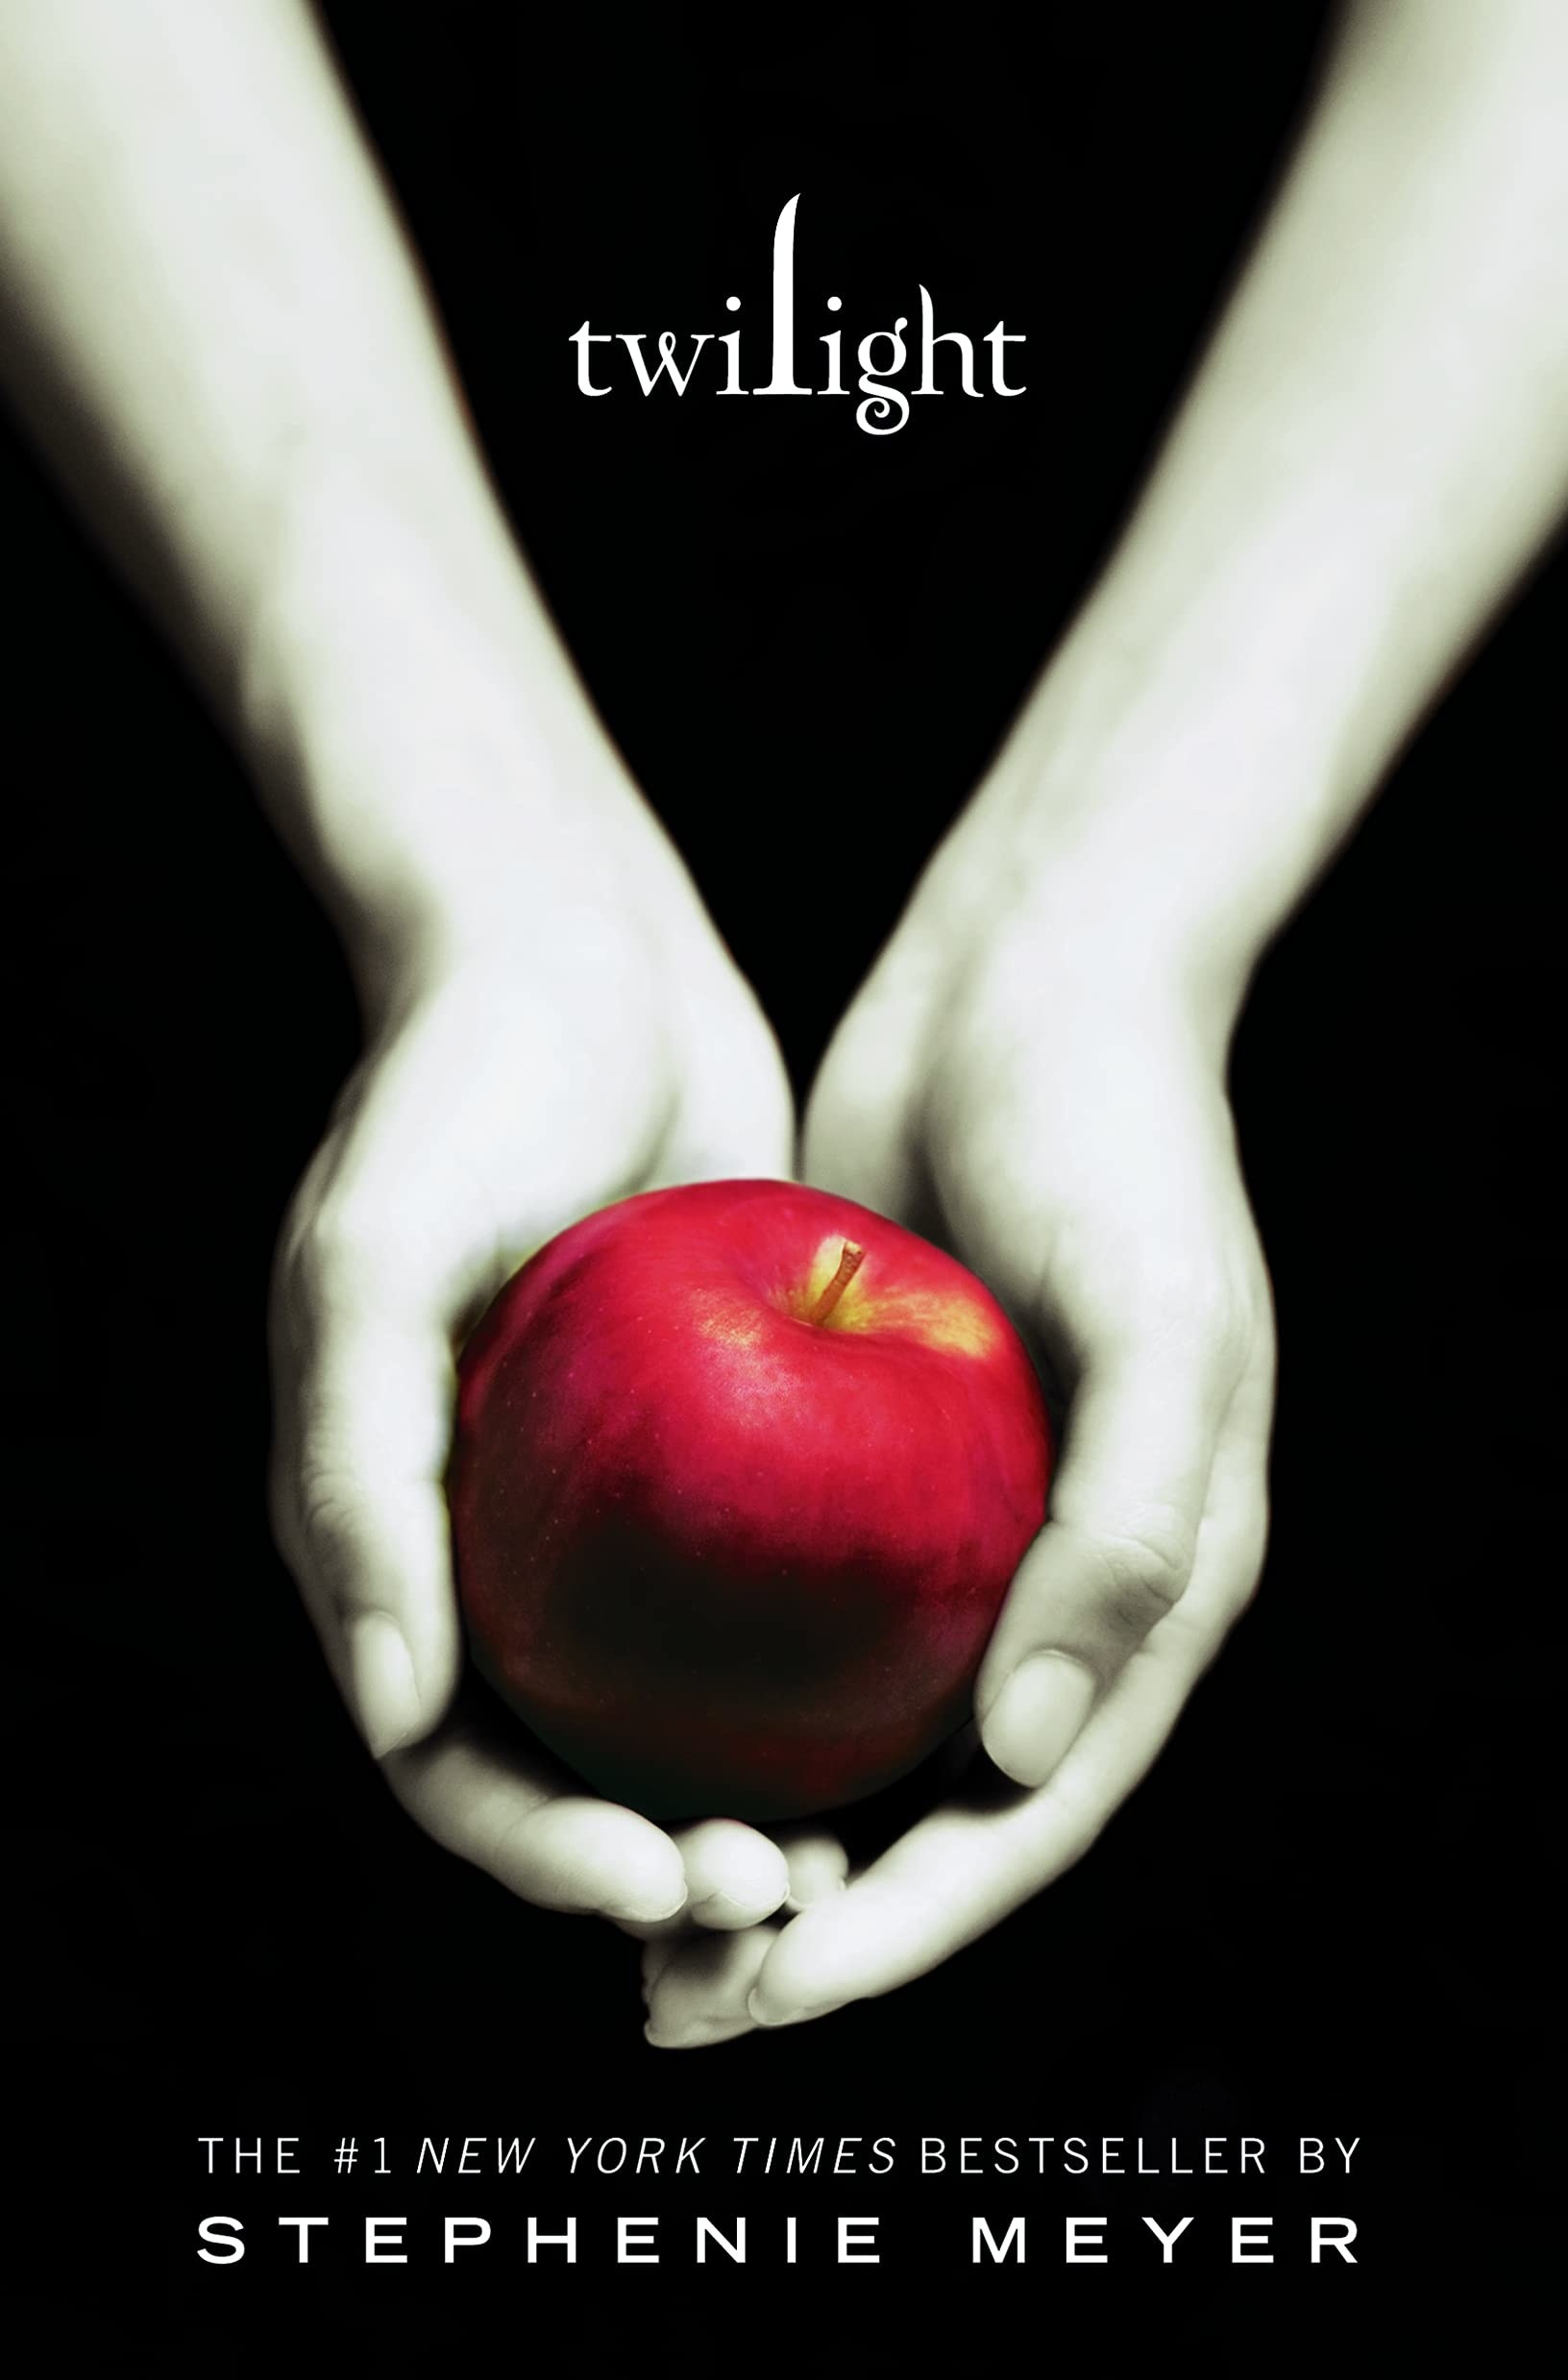 Book cover for Twilight; shows pale hands holding a red apple